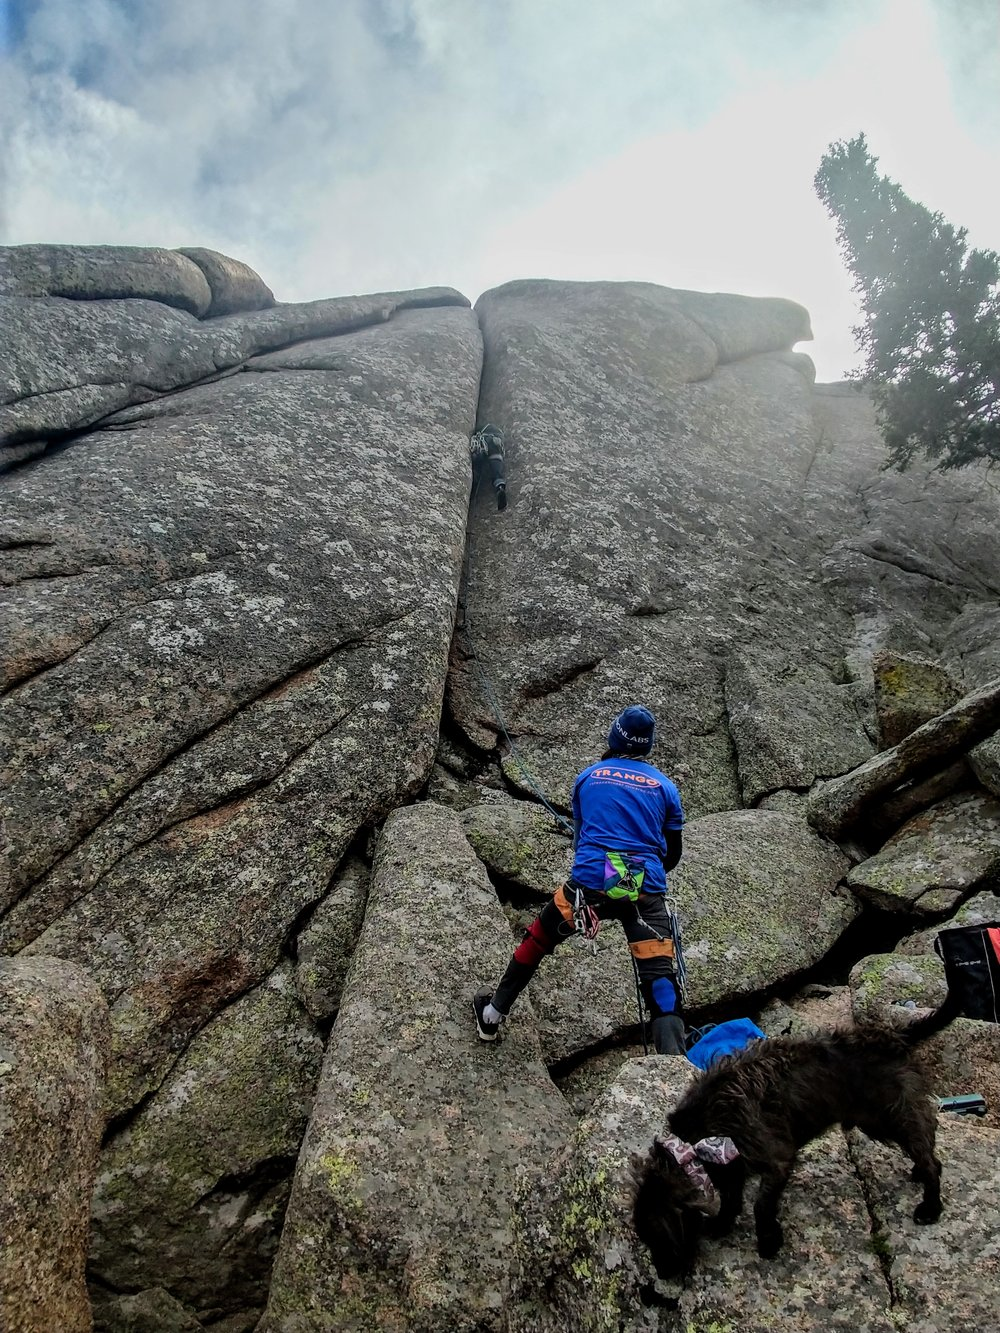 J.D. climbing the line at the strawberry Patch in Vedauwoo, WY. Devin Fin on the belay - Pelé on the sniff.